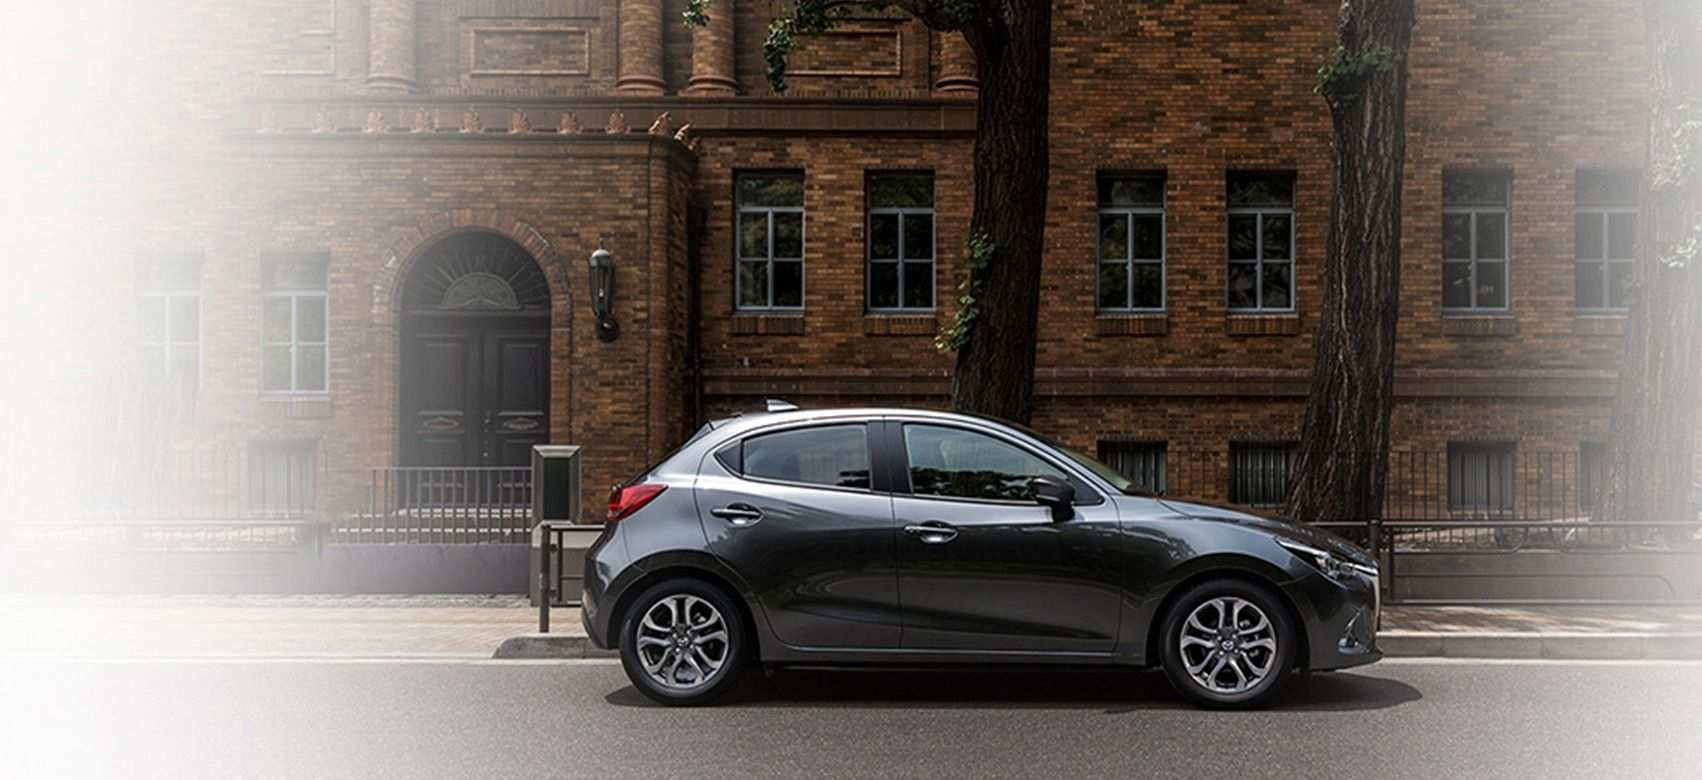 59 Best Review The Mazda 2 2019 Lebanon Specs And Review Research New for The Mazda 2 2019 Lebanon Specs And Review